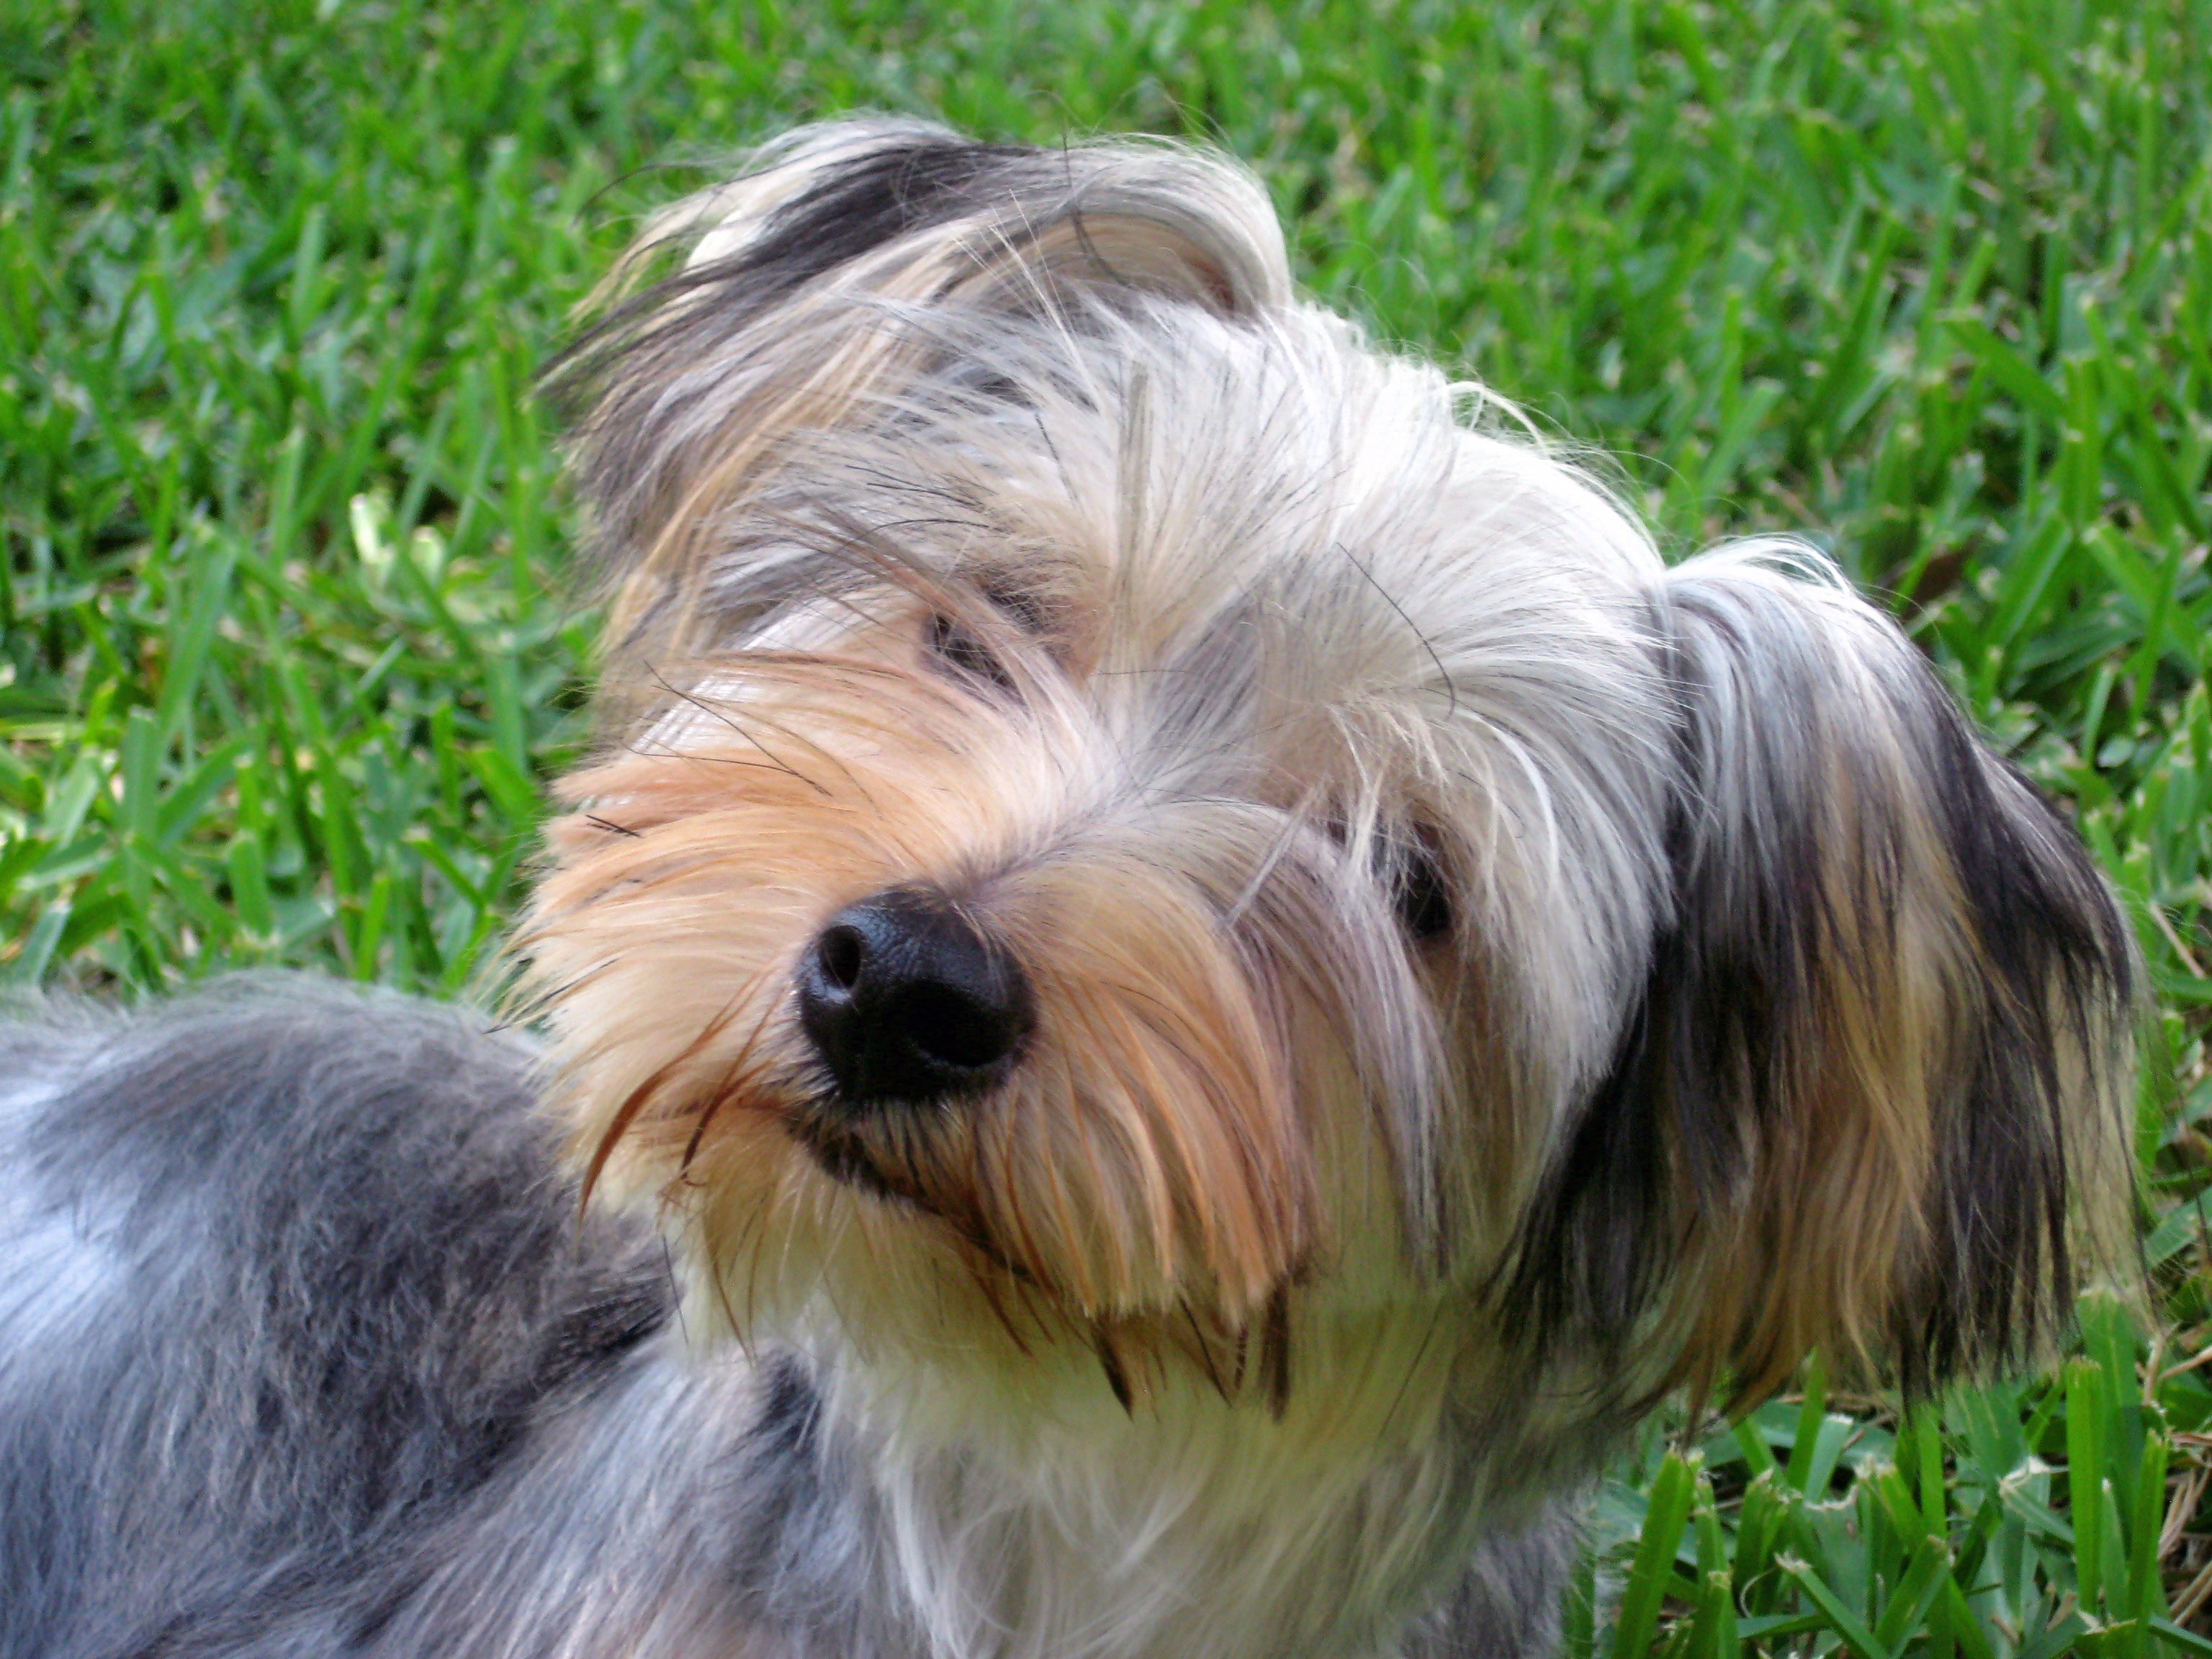 Yorkie Haircuts For Floppy Ears | hairstylegalleries.com